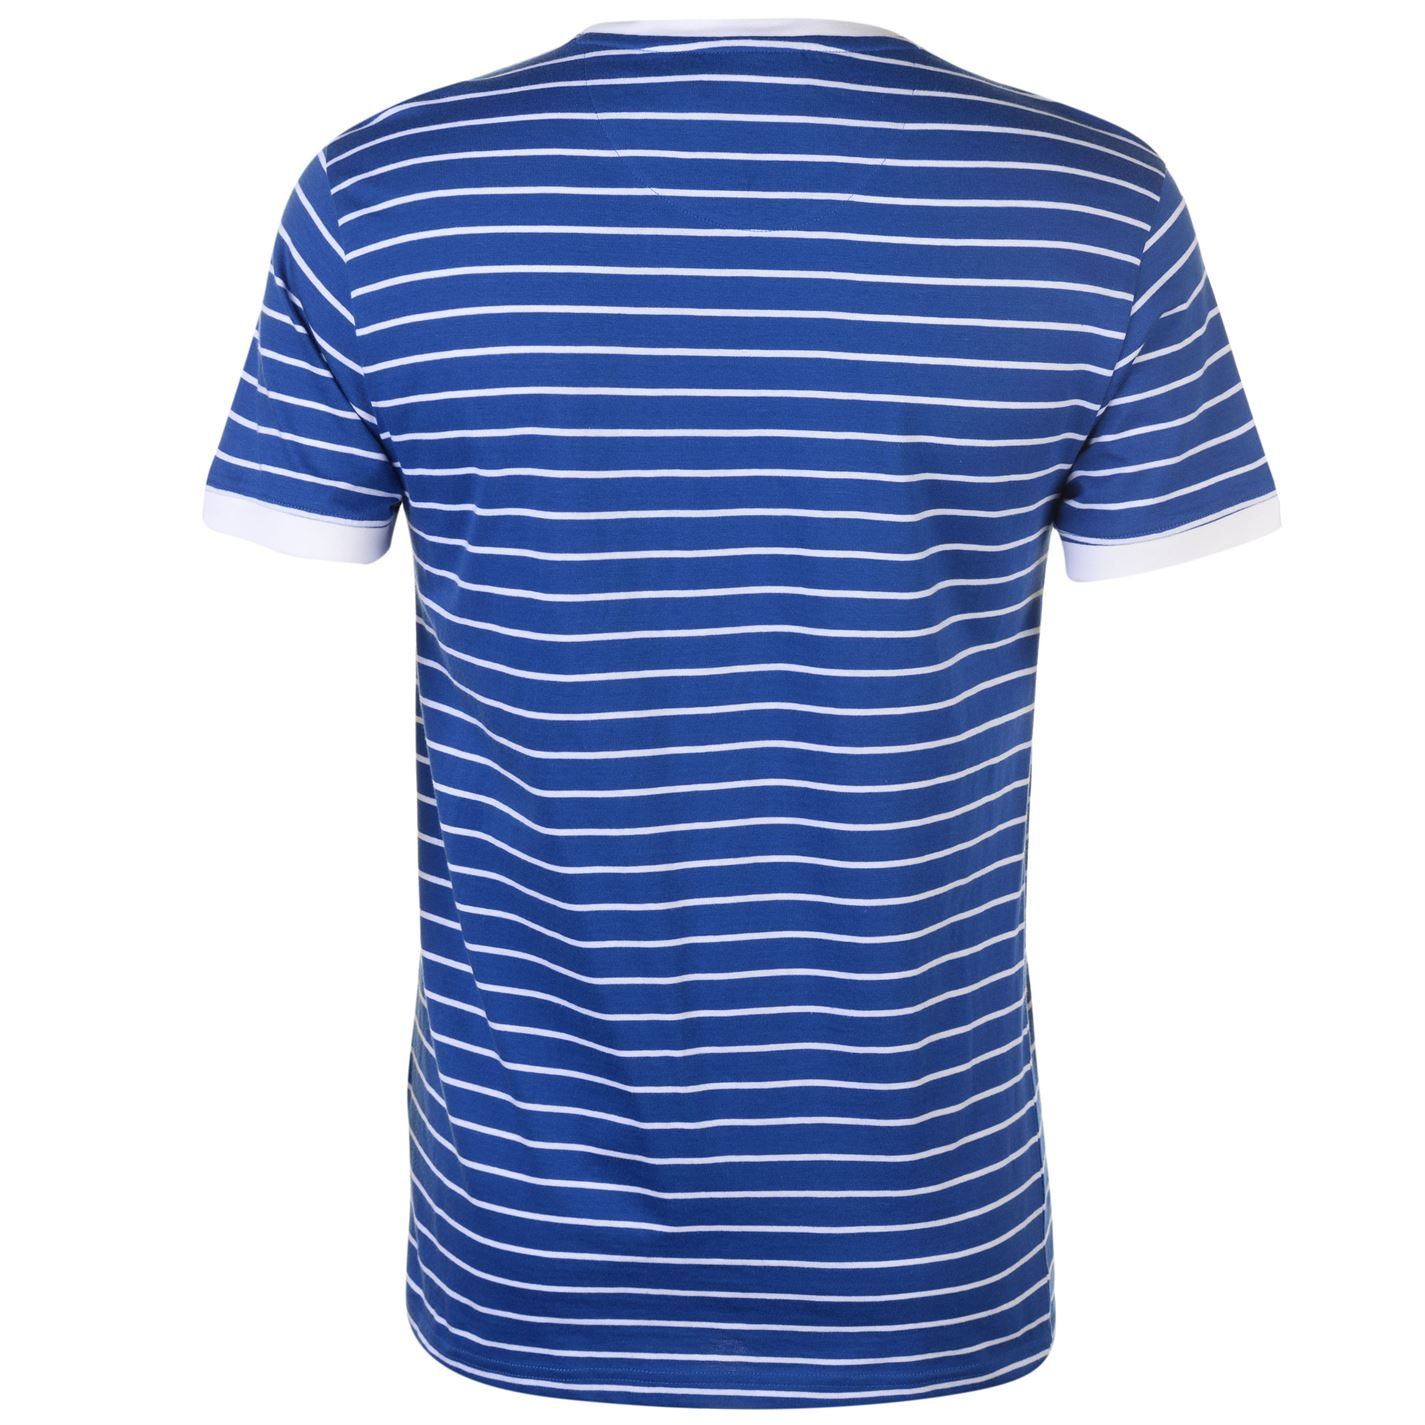 Pierre-Cardin-Mens-Stripe-Ringer-T-Shirt-Crew-Neck-Tee-Top-Short-Sleeve-Cotton thumbnail 15